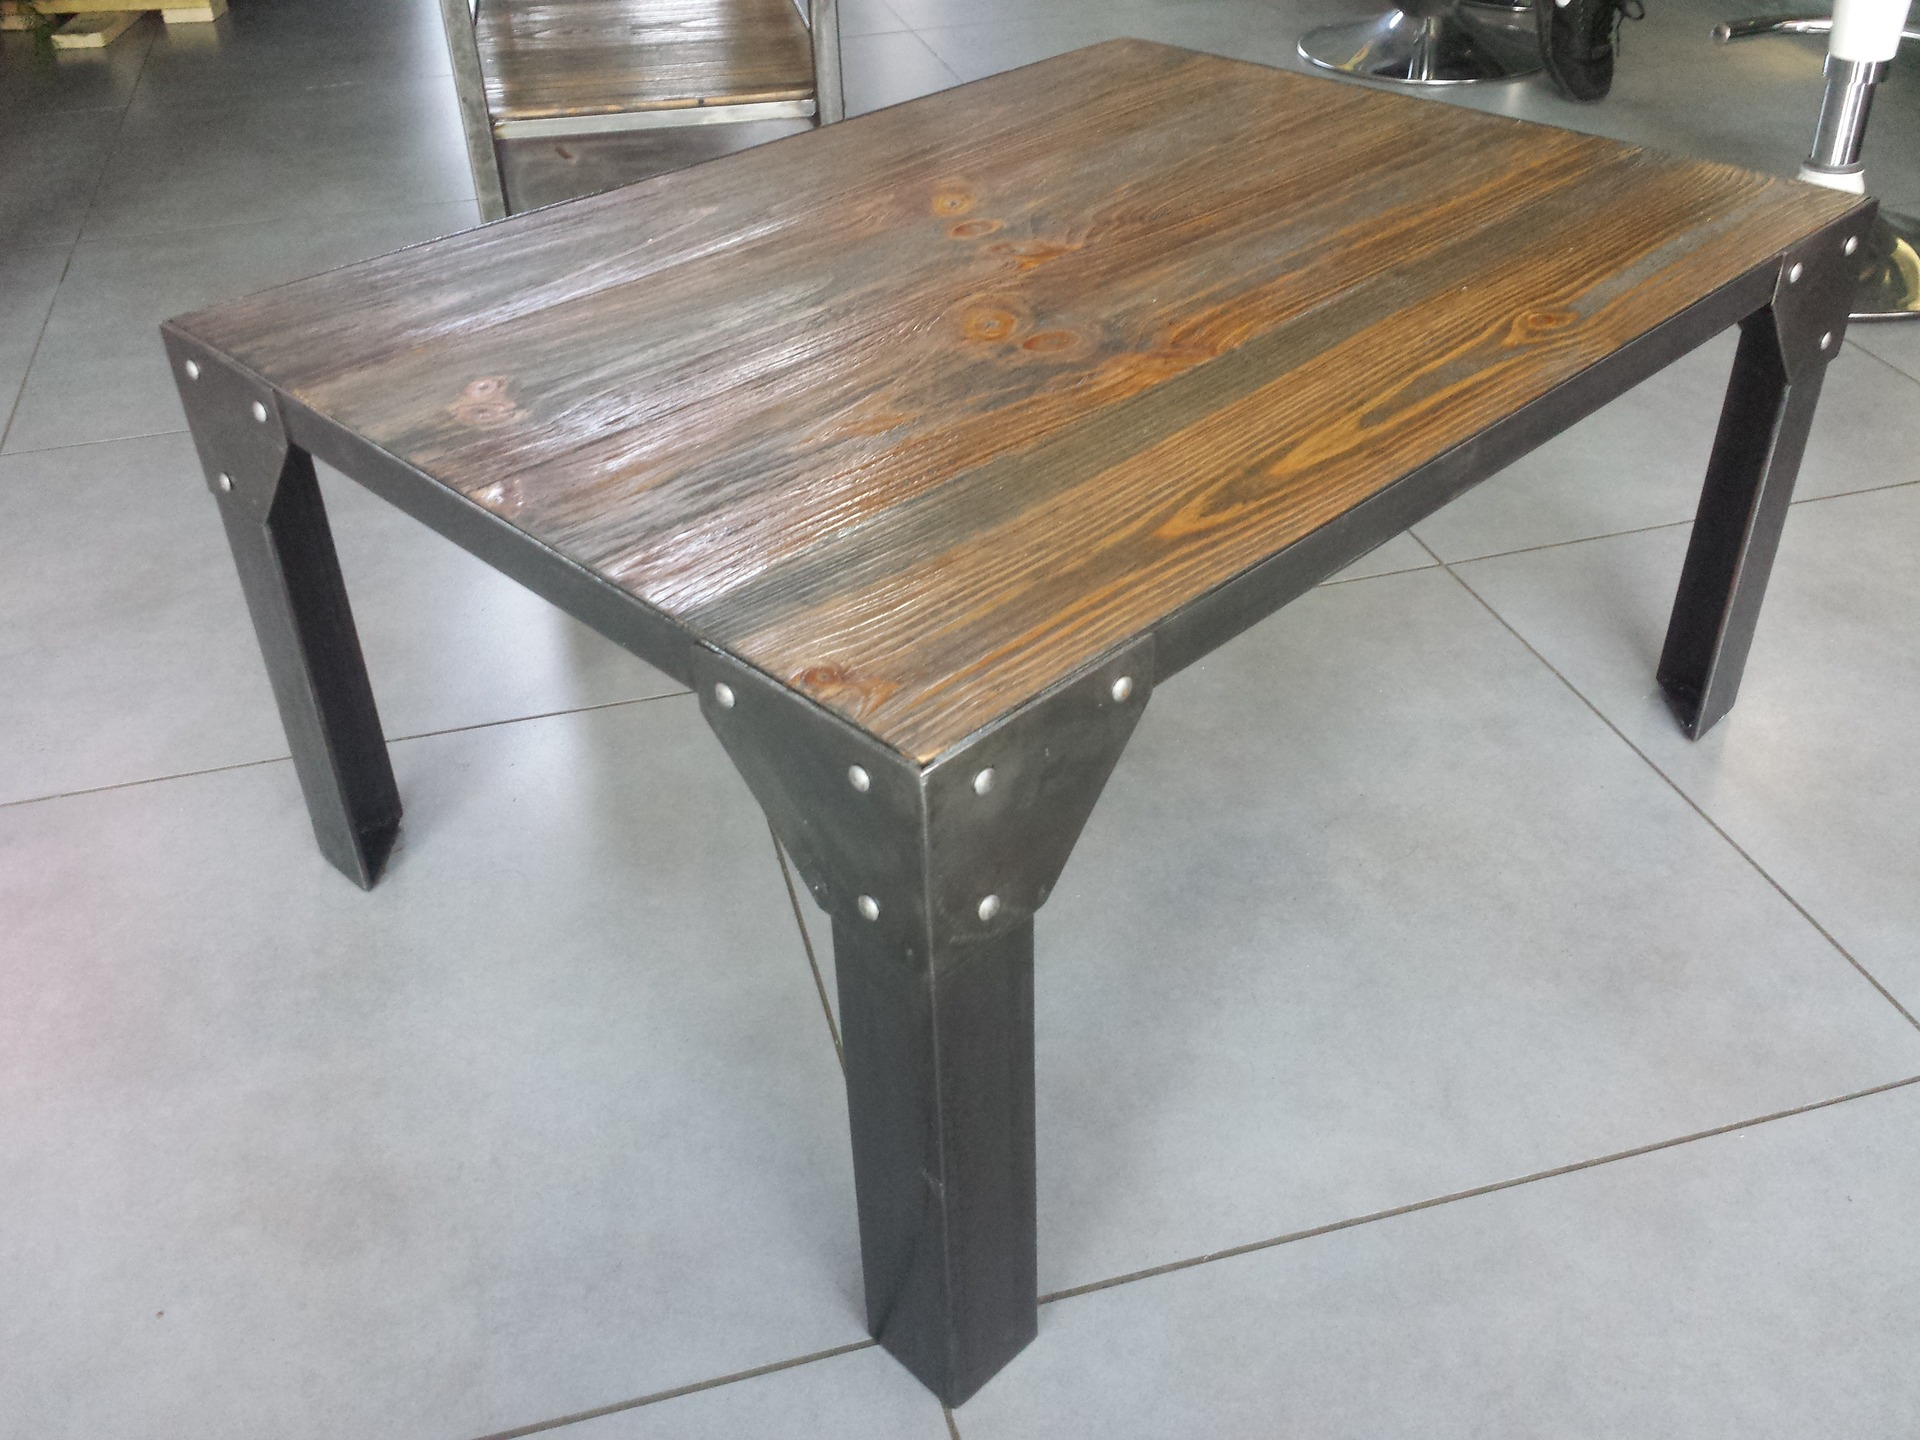 Table Exterieur Industriel Fabriquer Sa Table Basse Industrielle Boutique Gain De